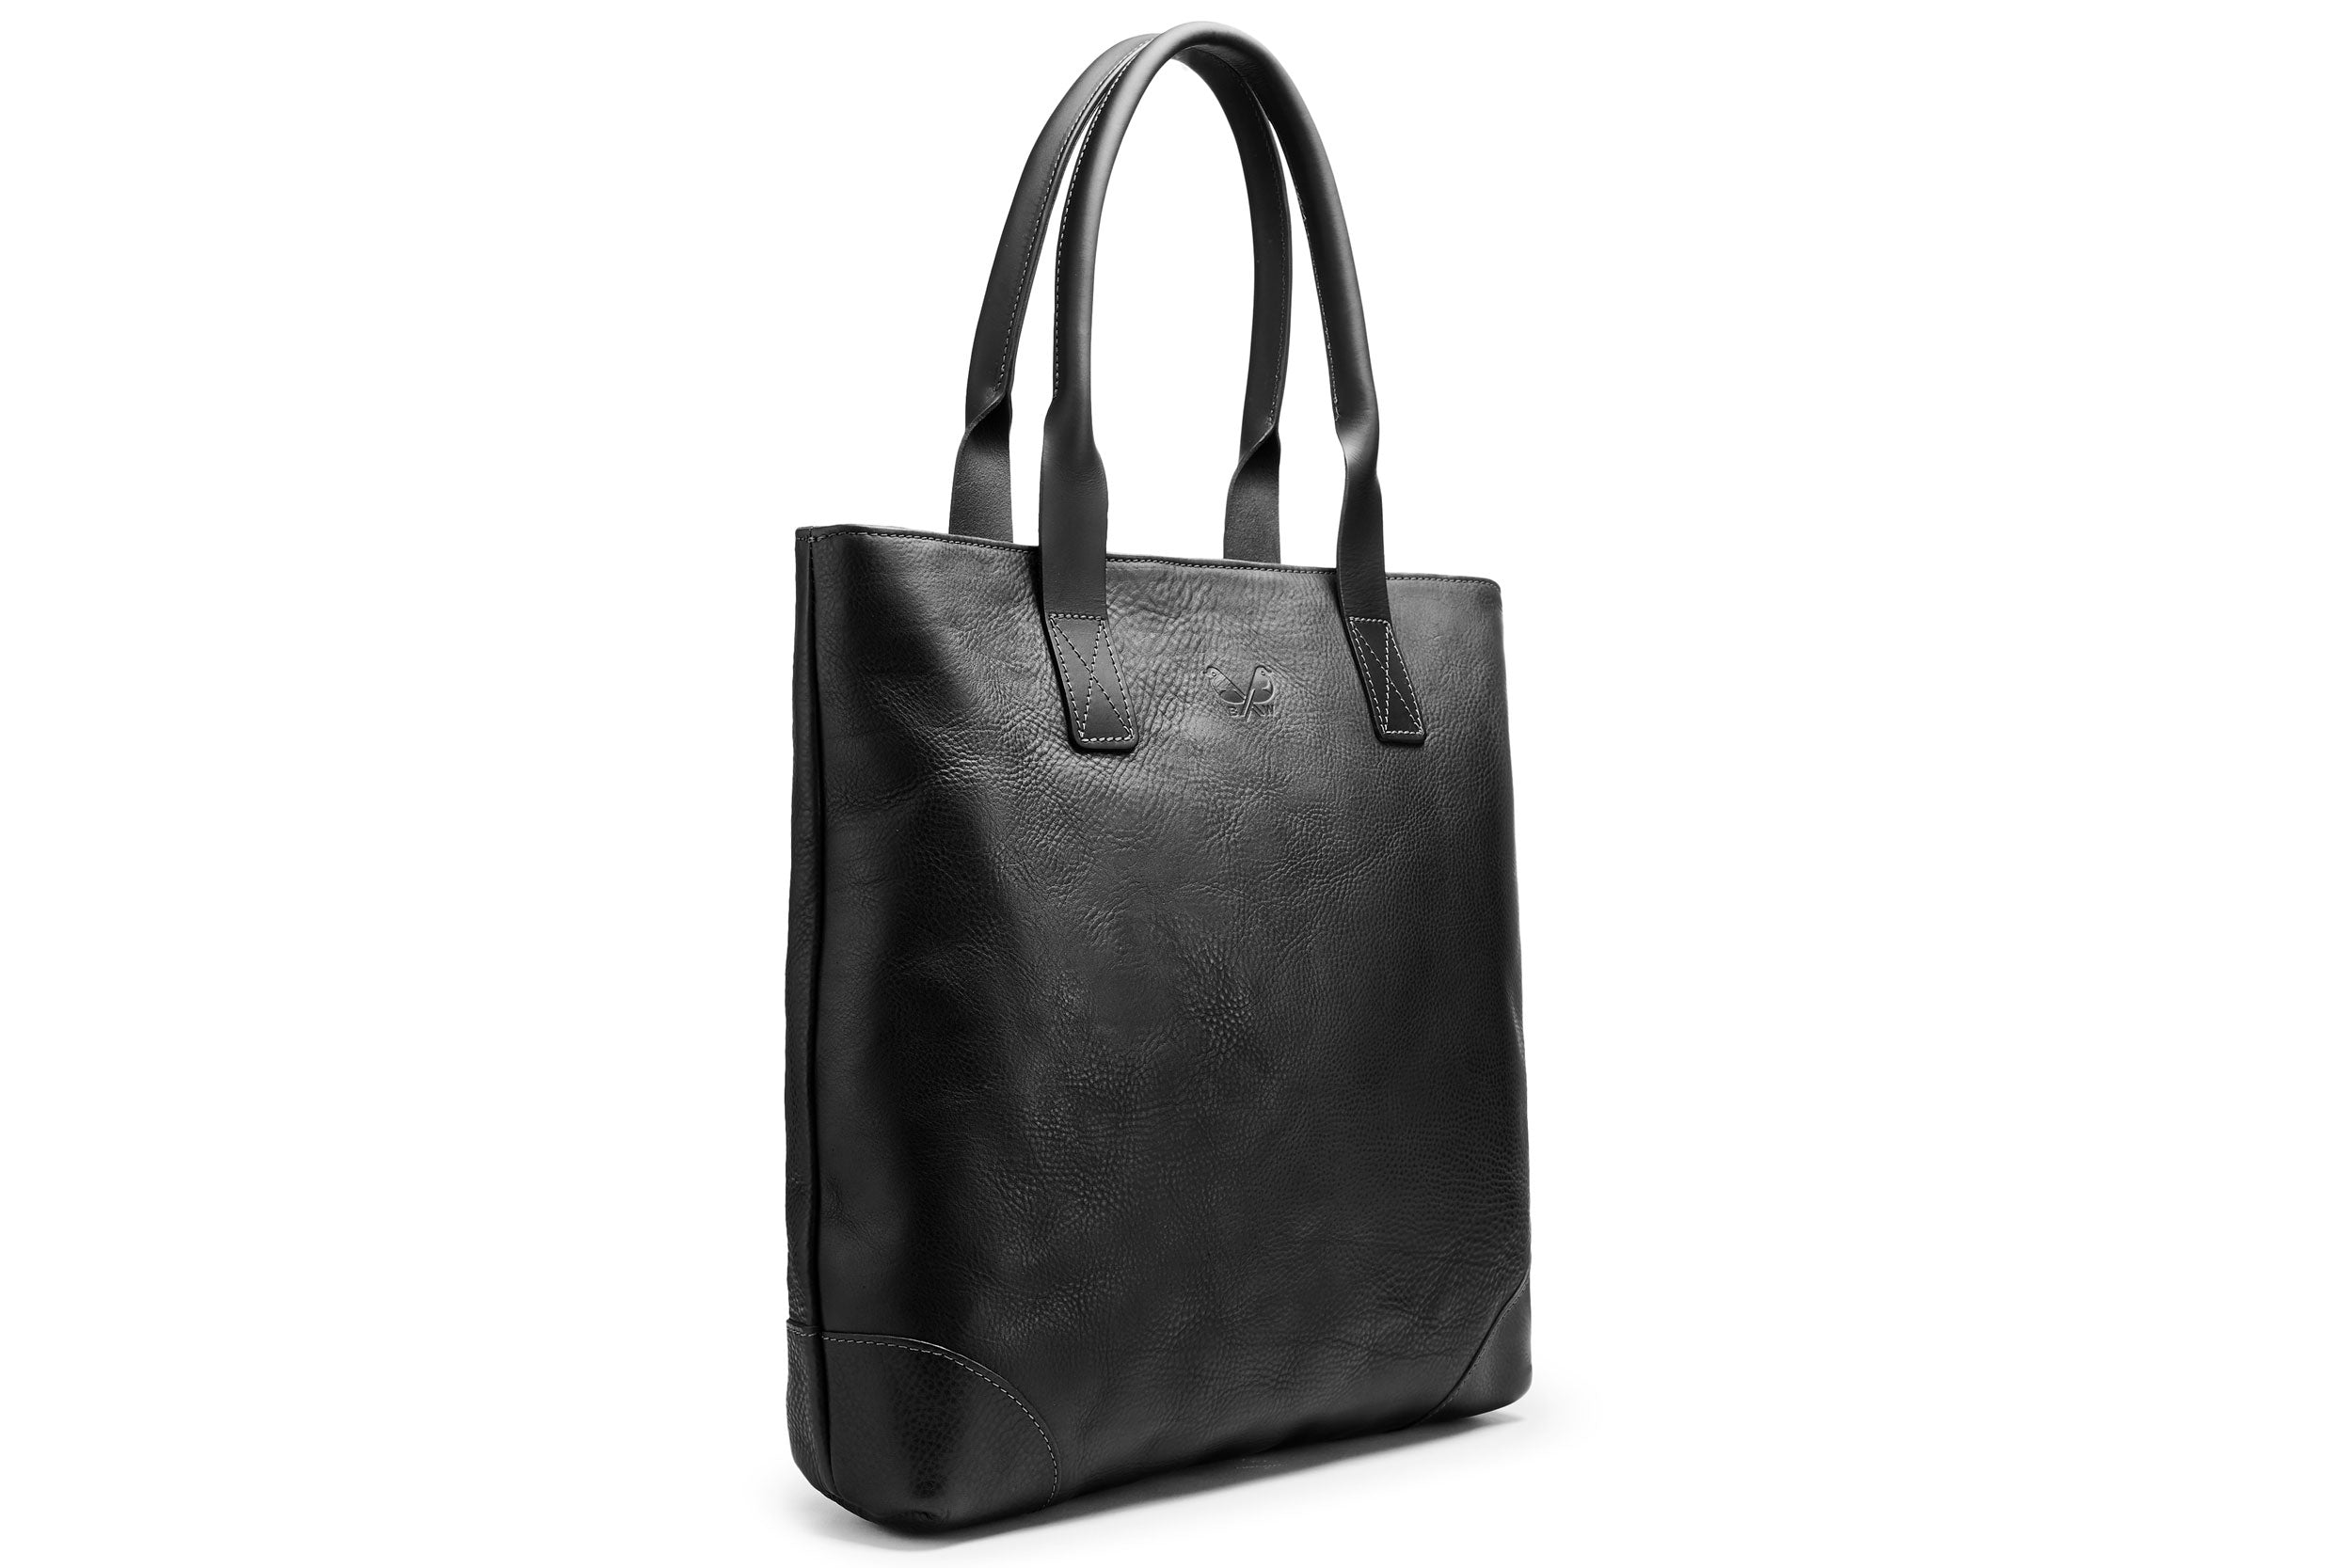 Full Leather Tote - Black